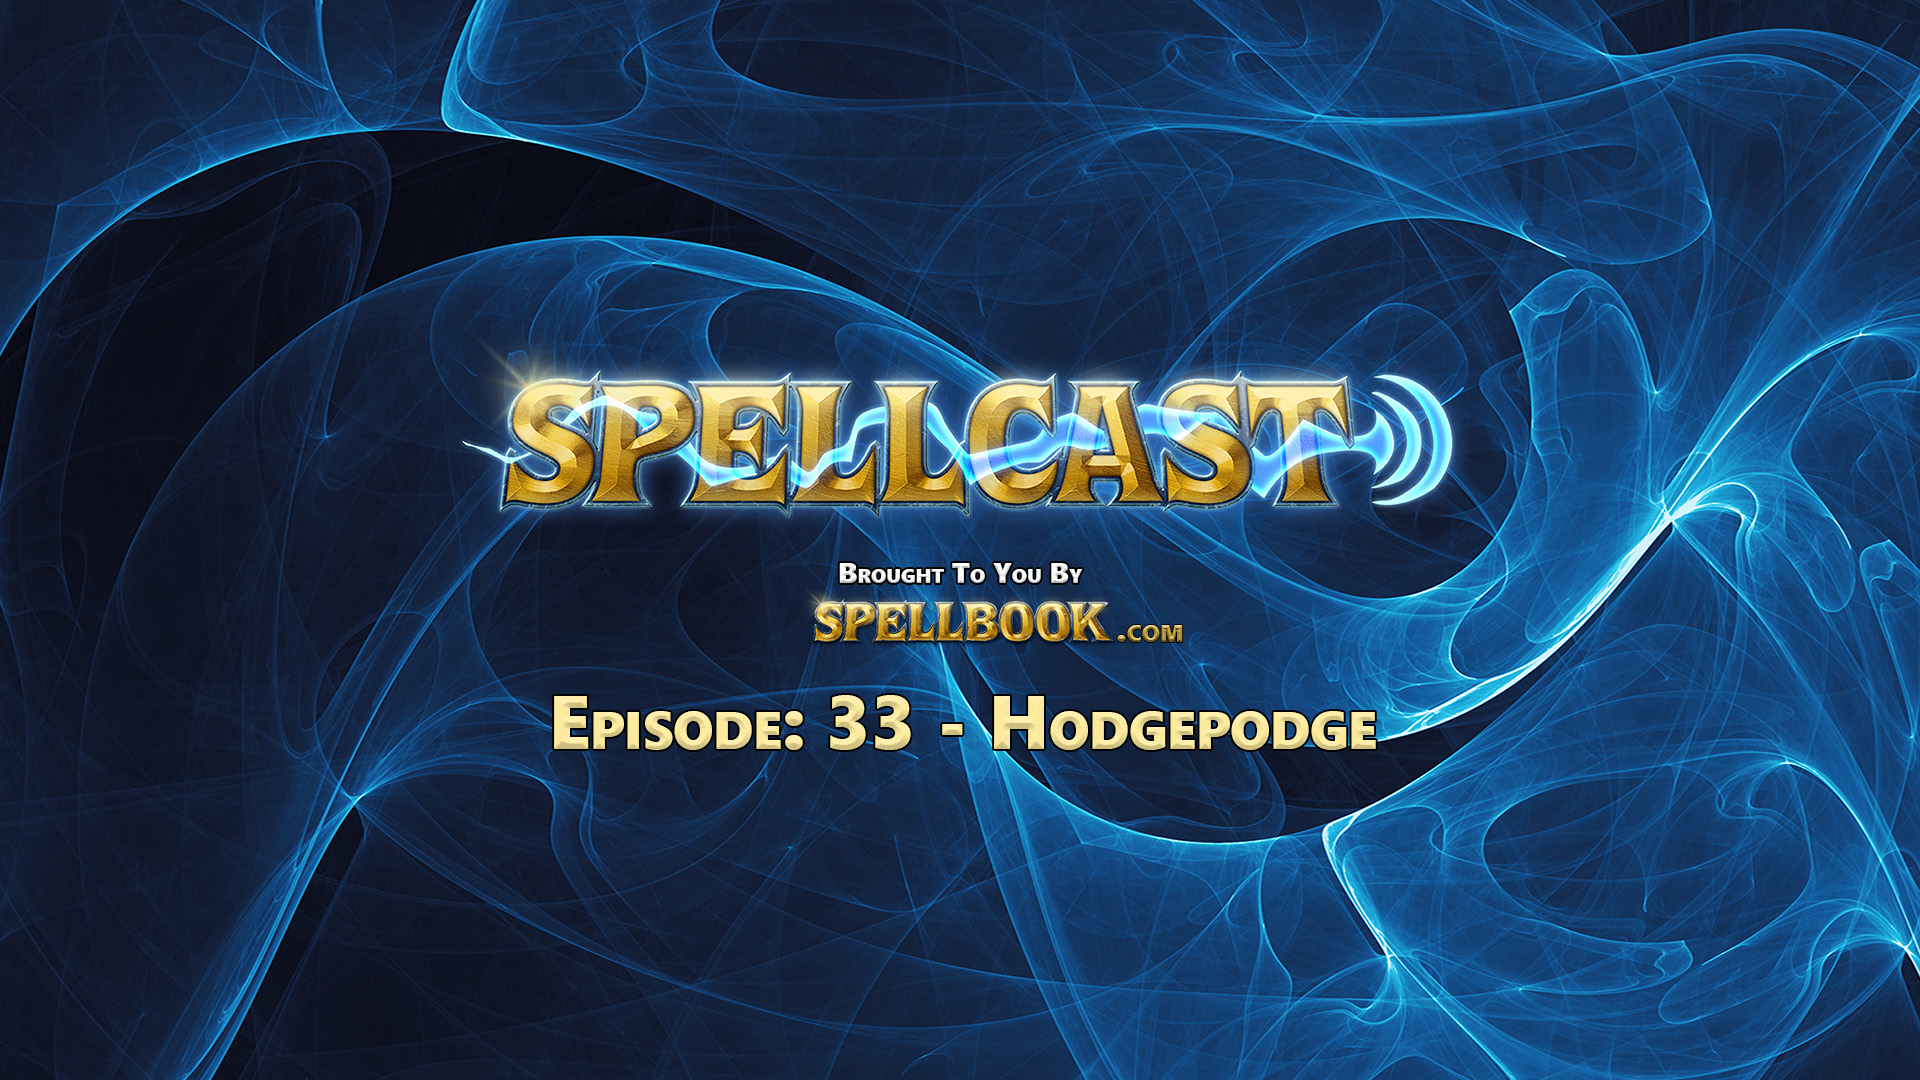 Spellcast Episode: 33 - Hodgepodge